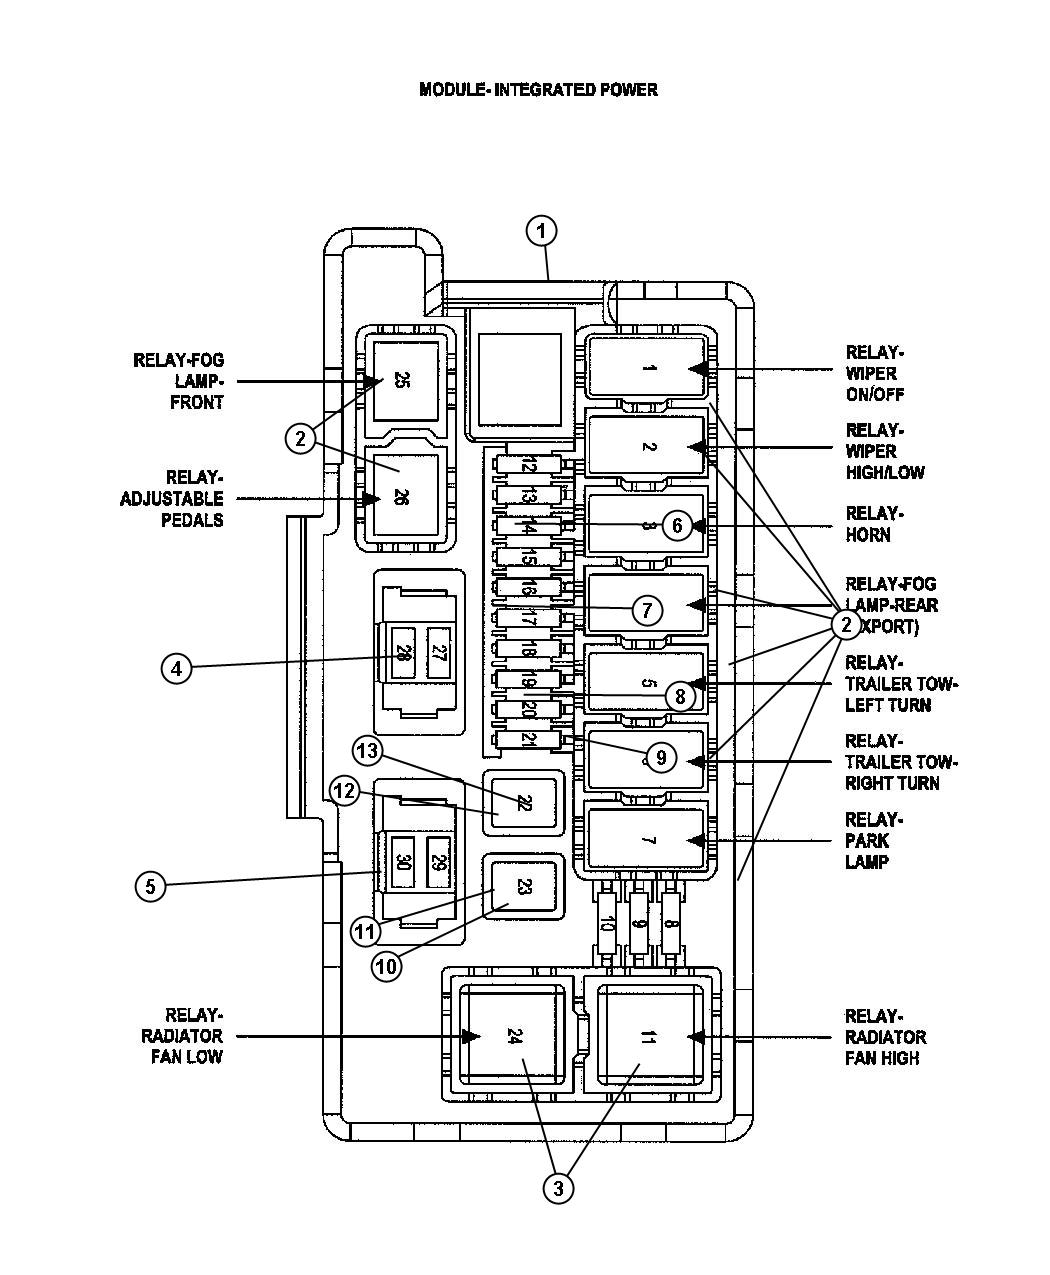 2002 Jeep Wrangler Wiring Diagram